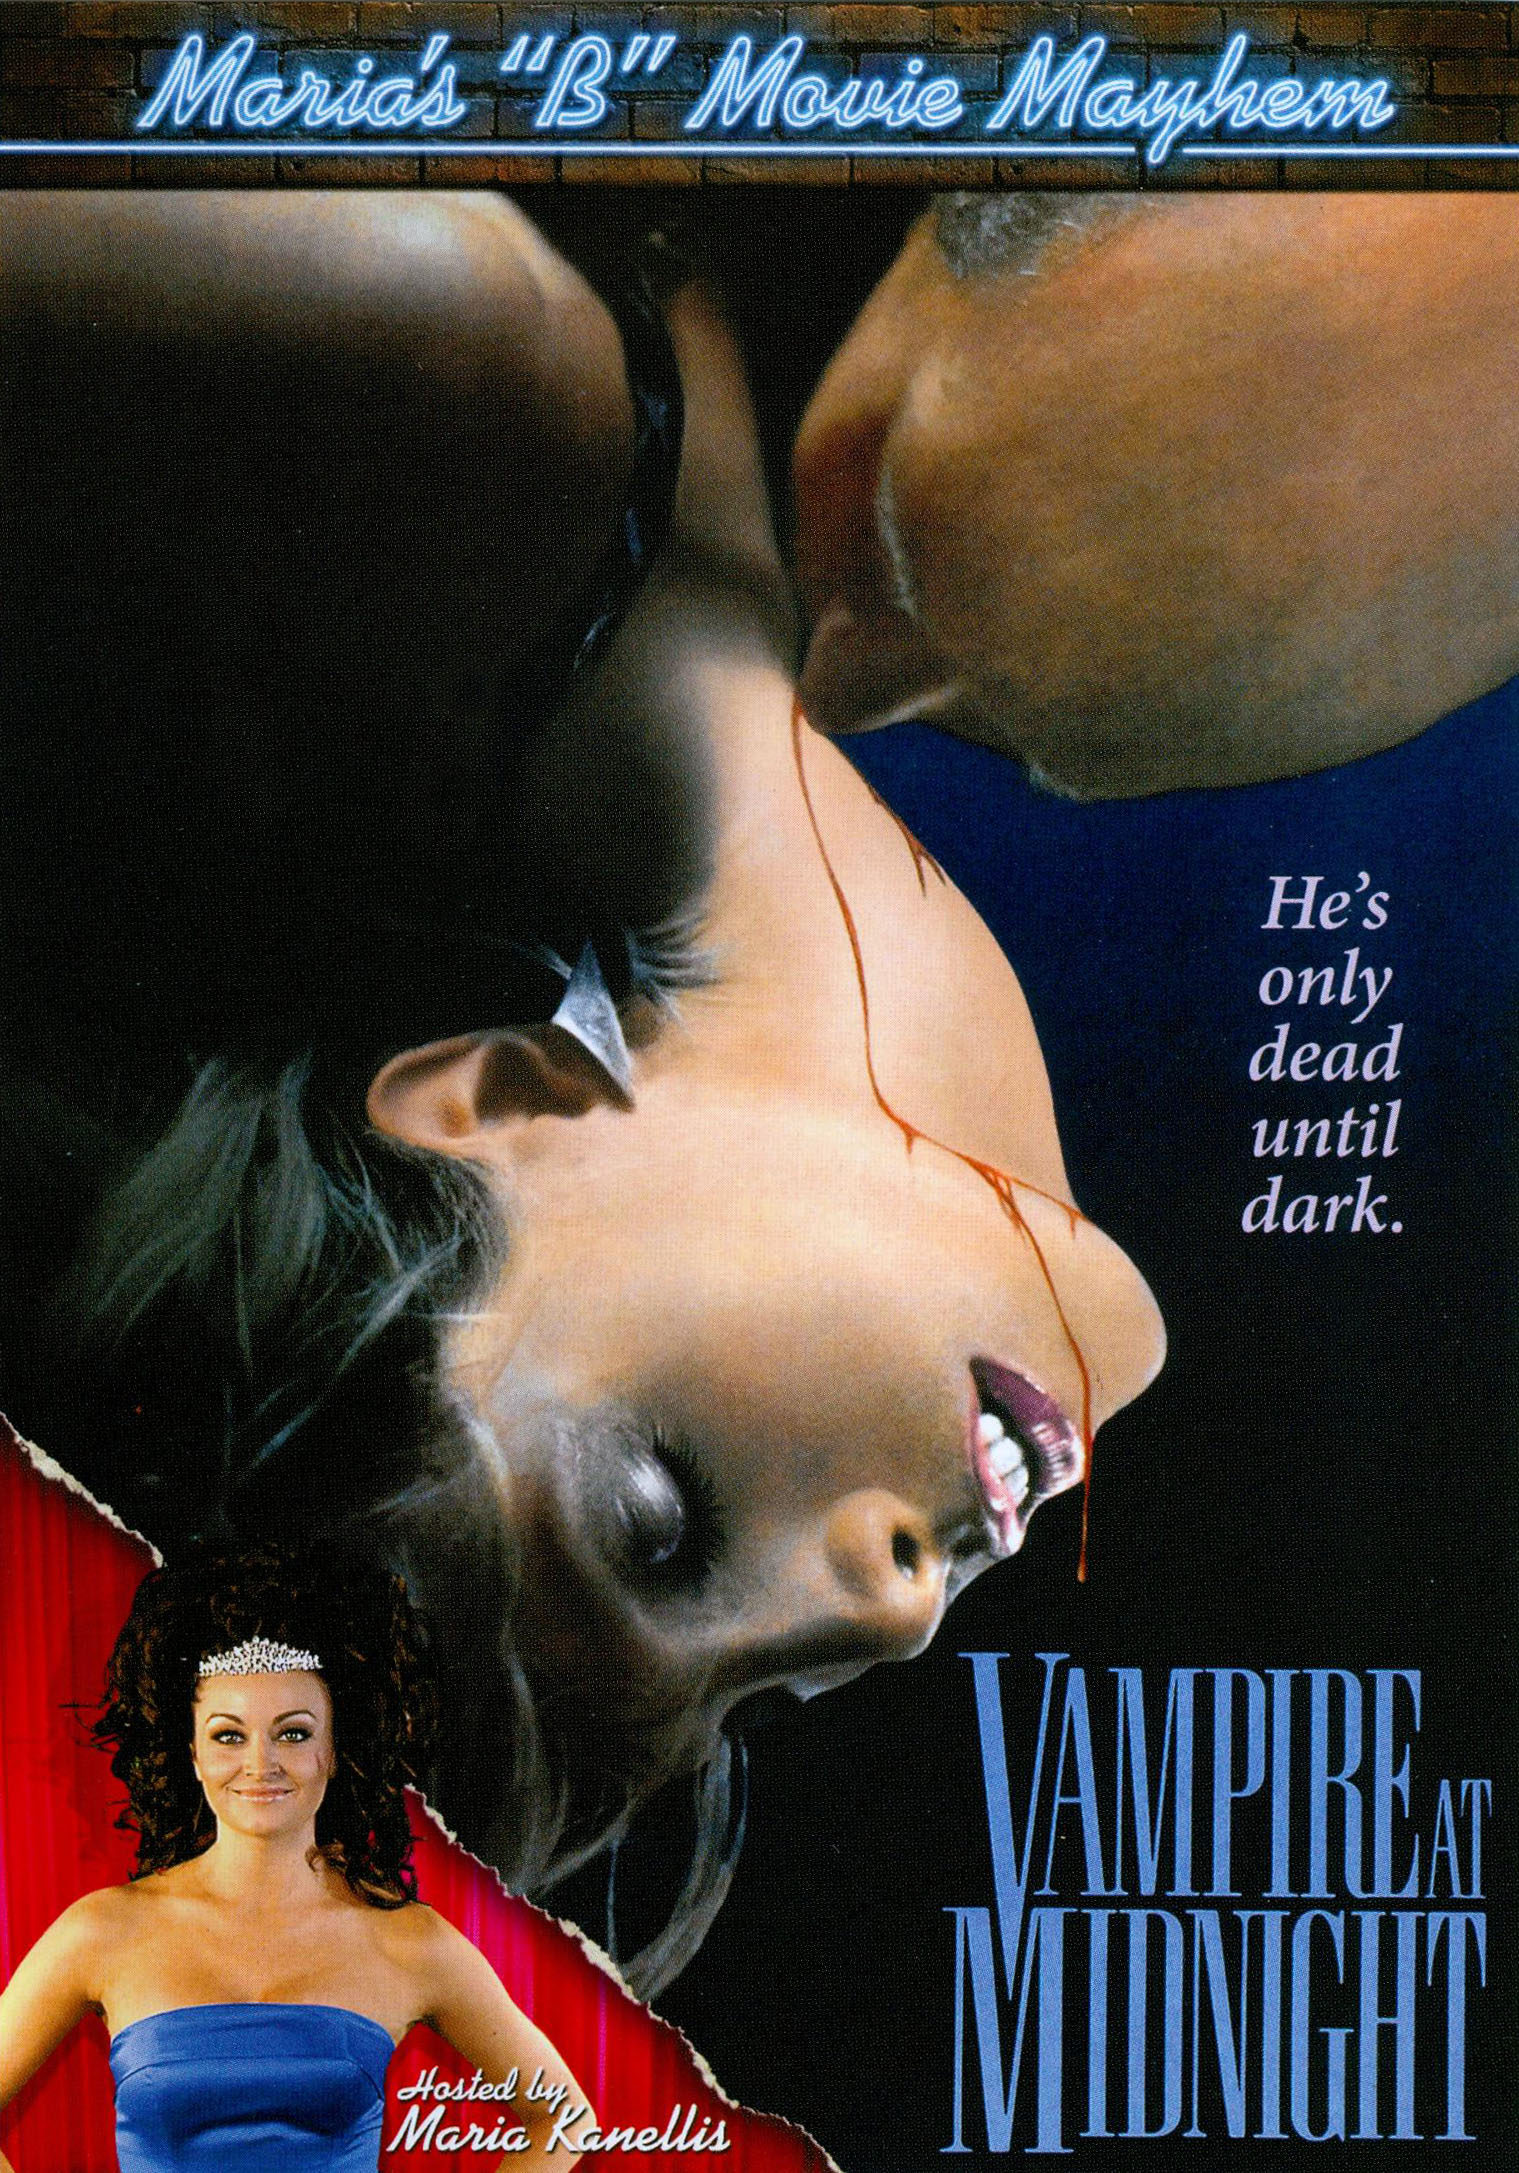 Vampire at Midnight